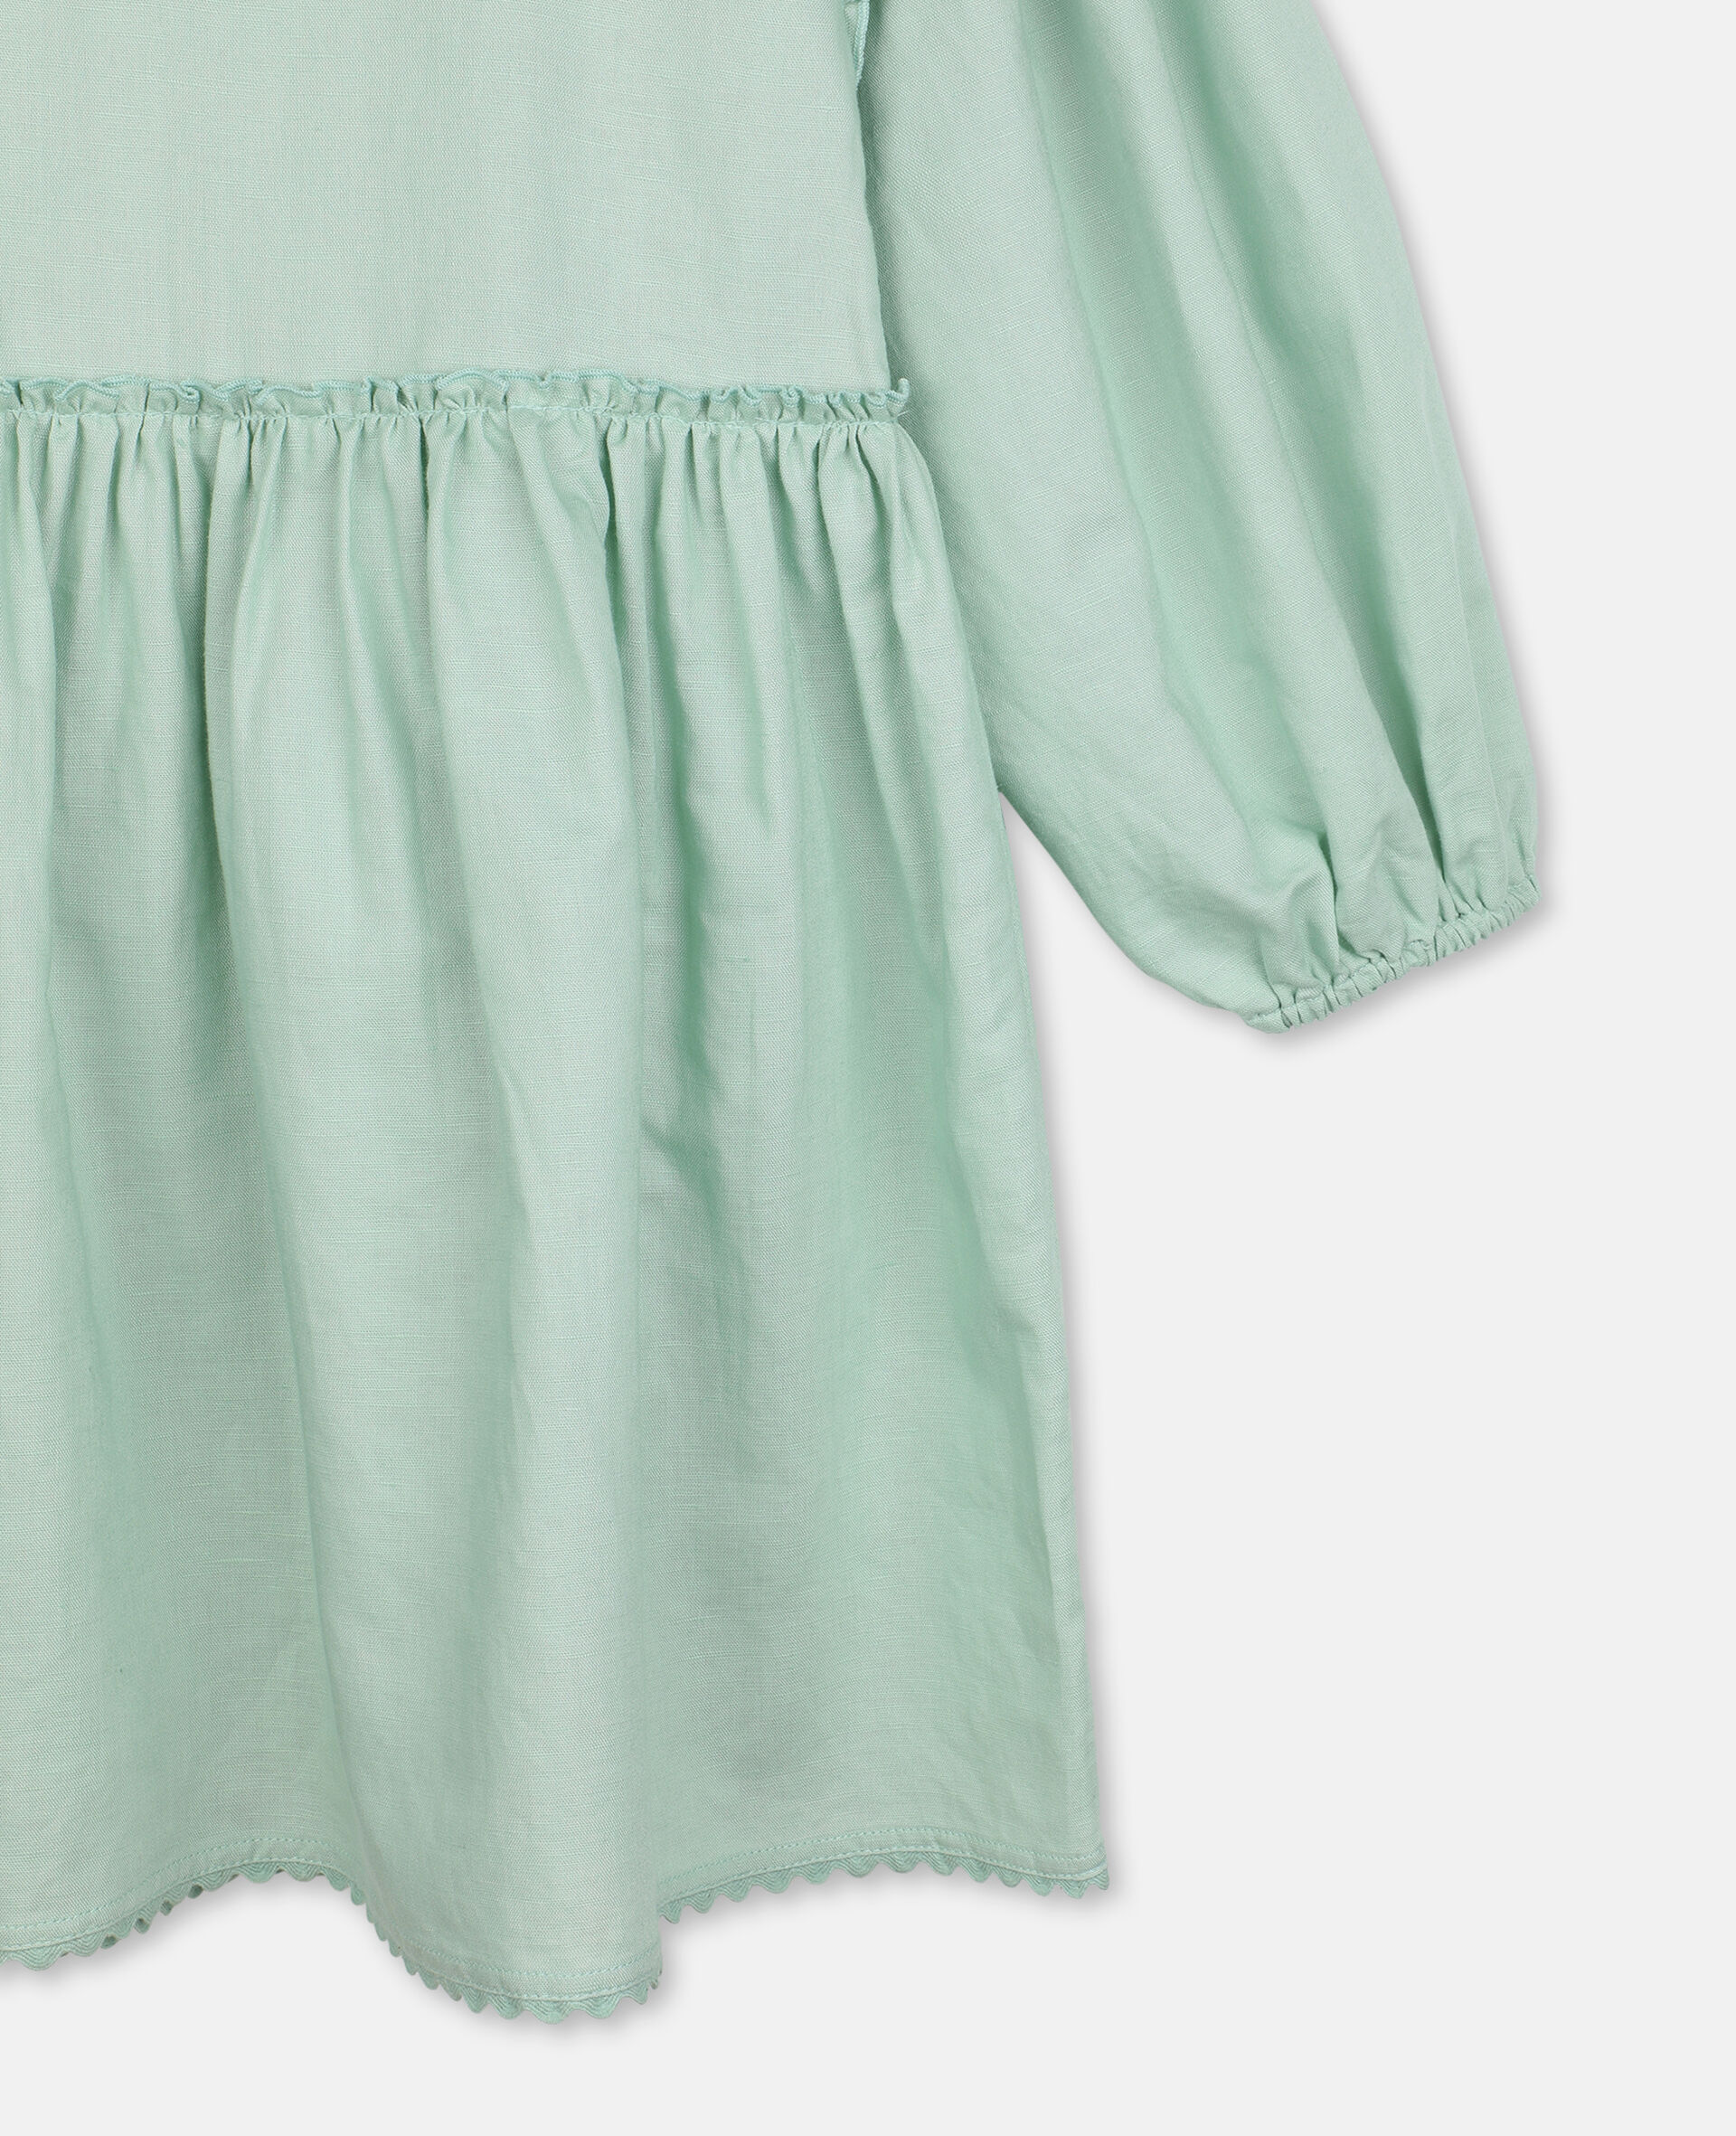 Dress with Butterfly Lace-Green-large image number 2